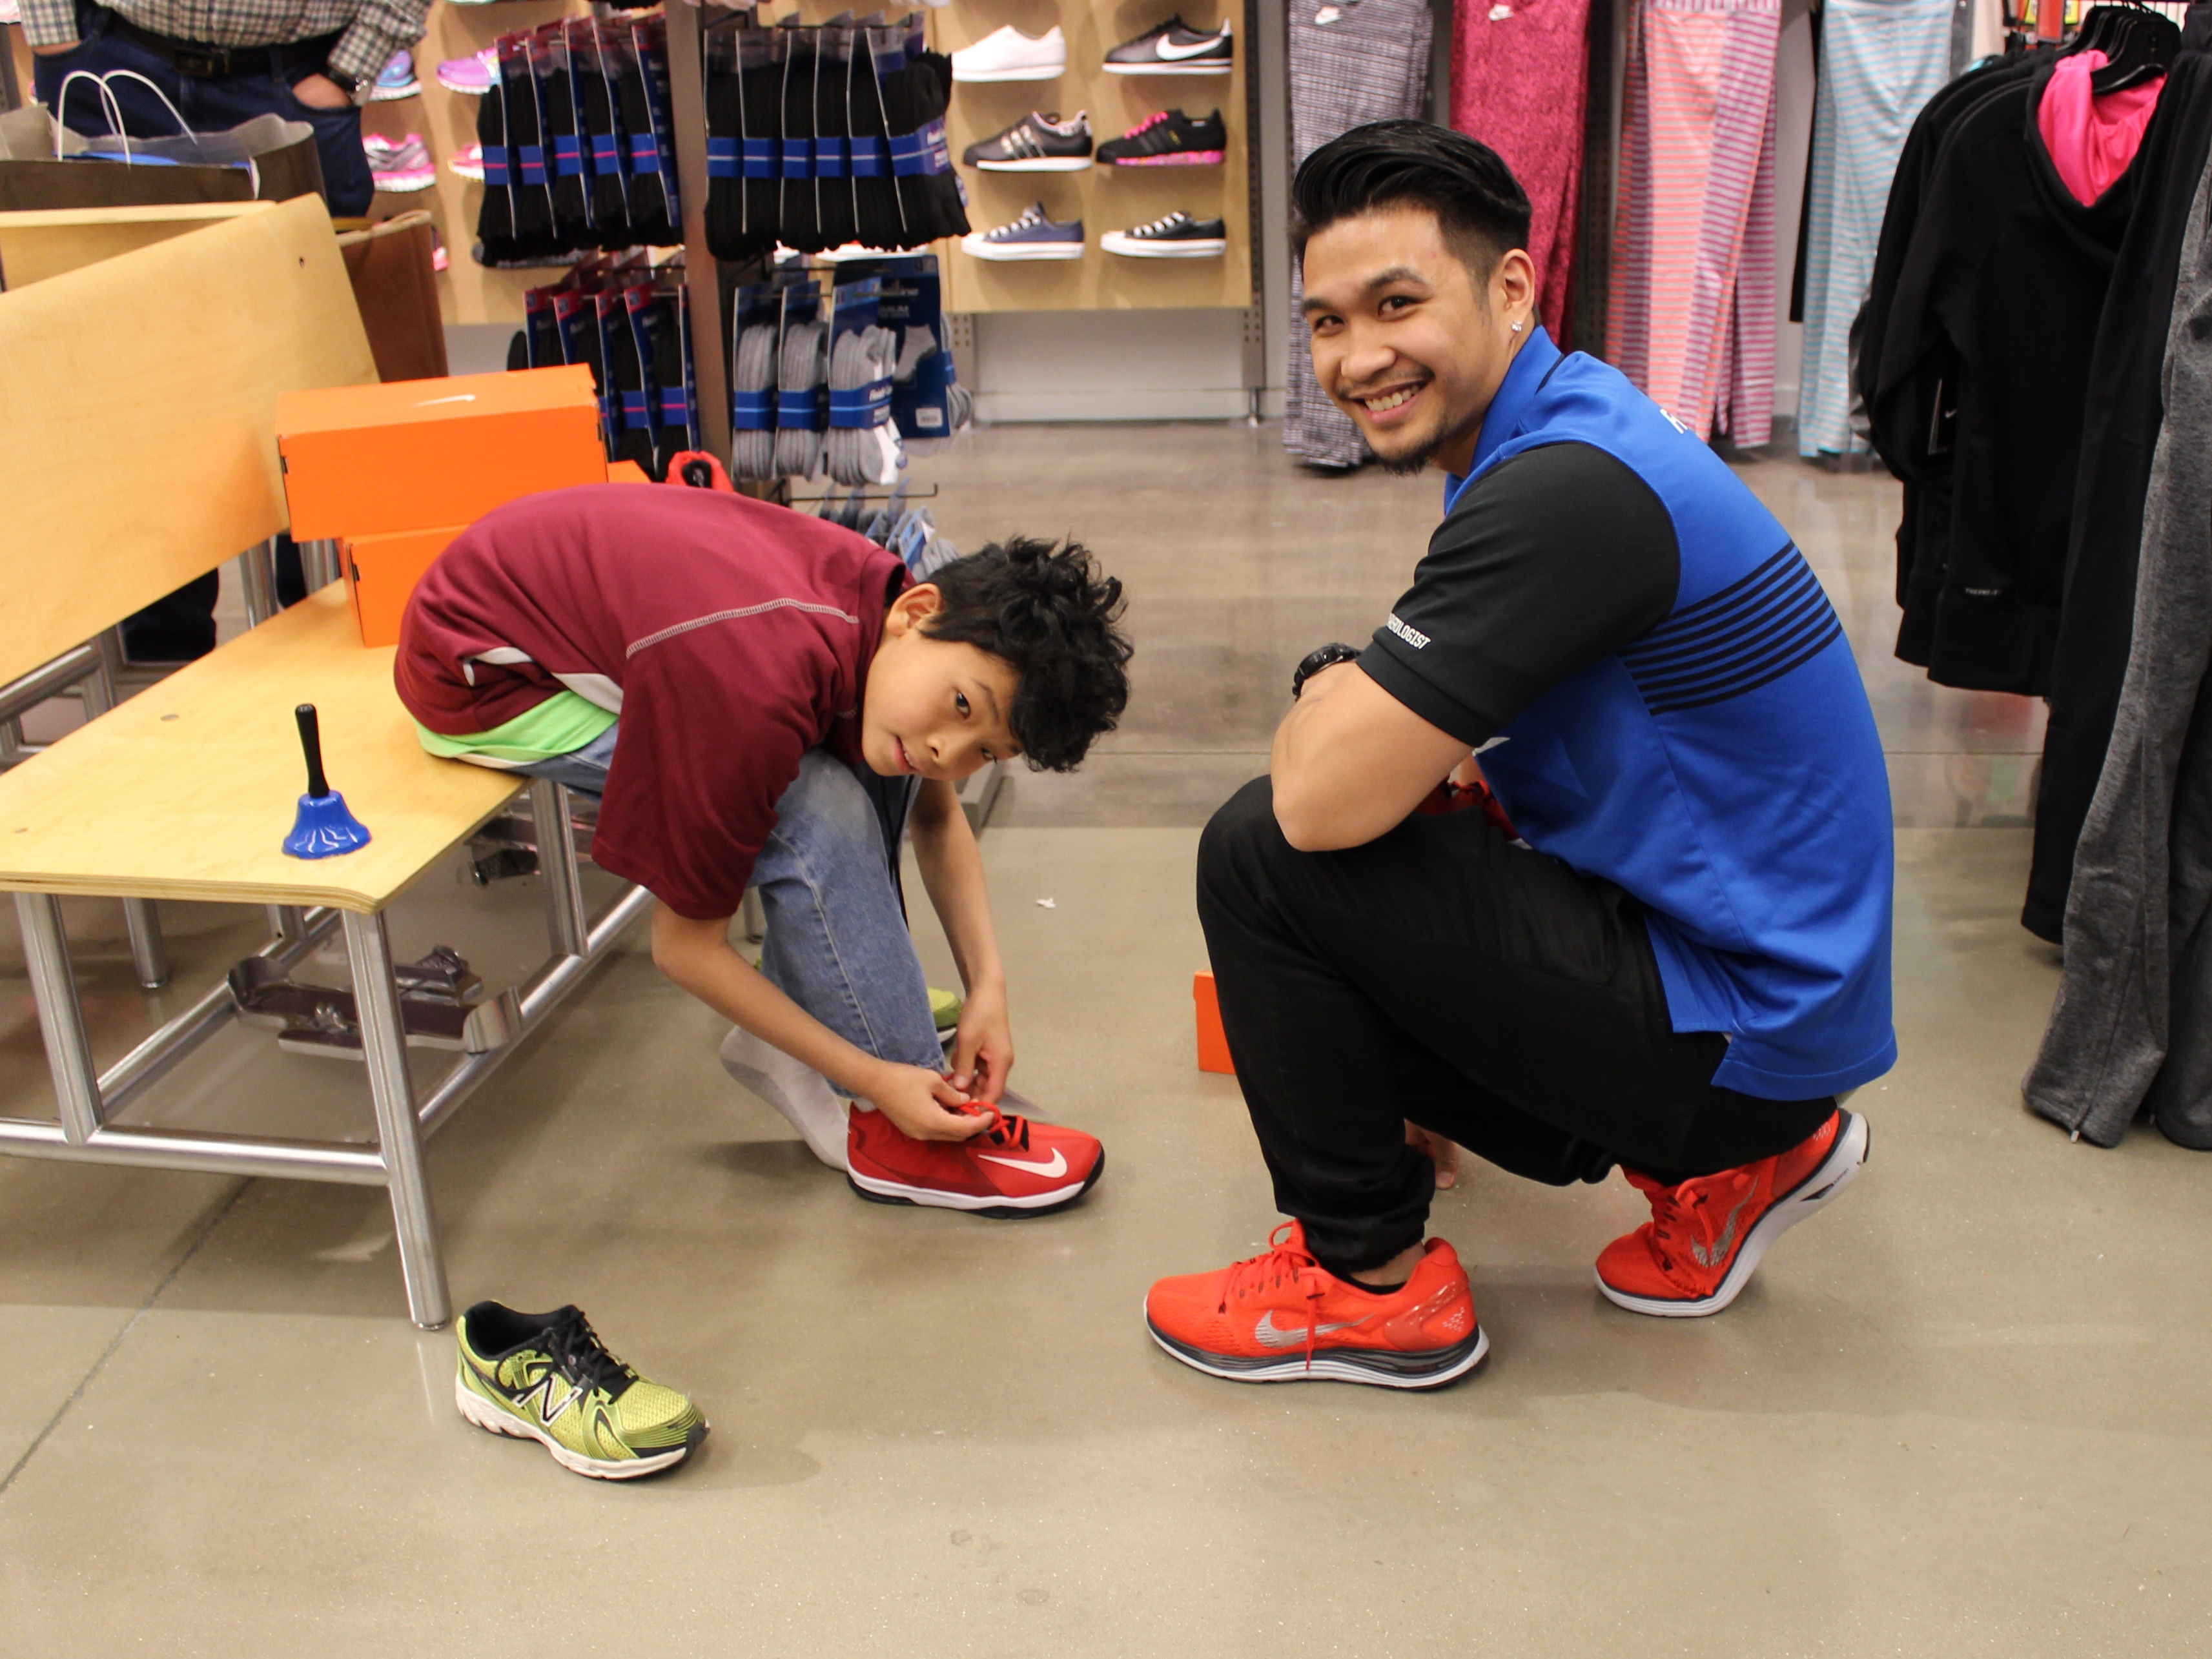 20 athletes receive new shoes from finish line